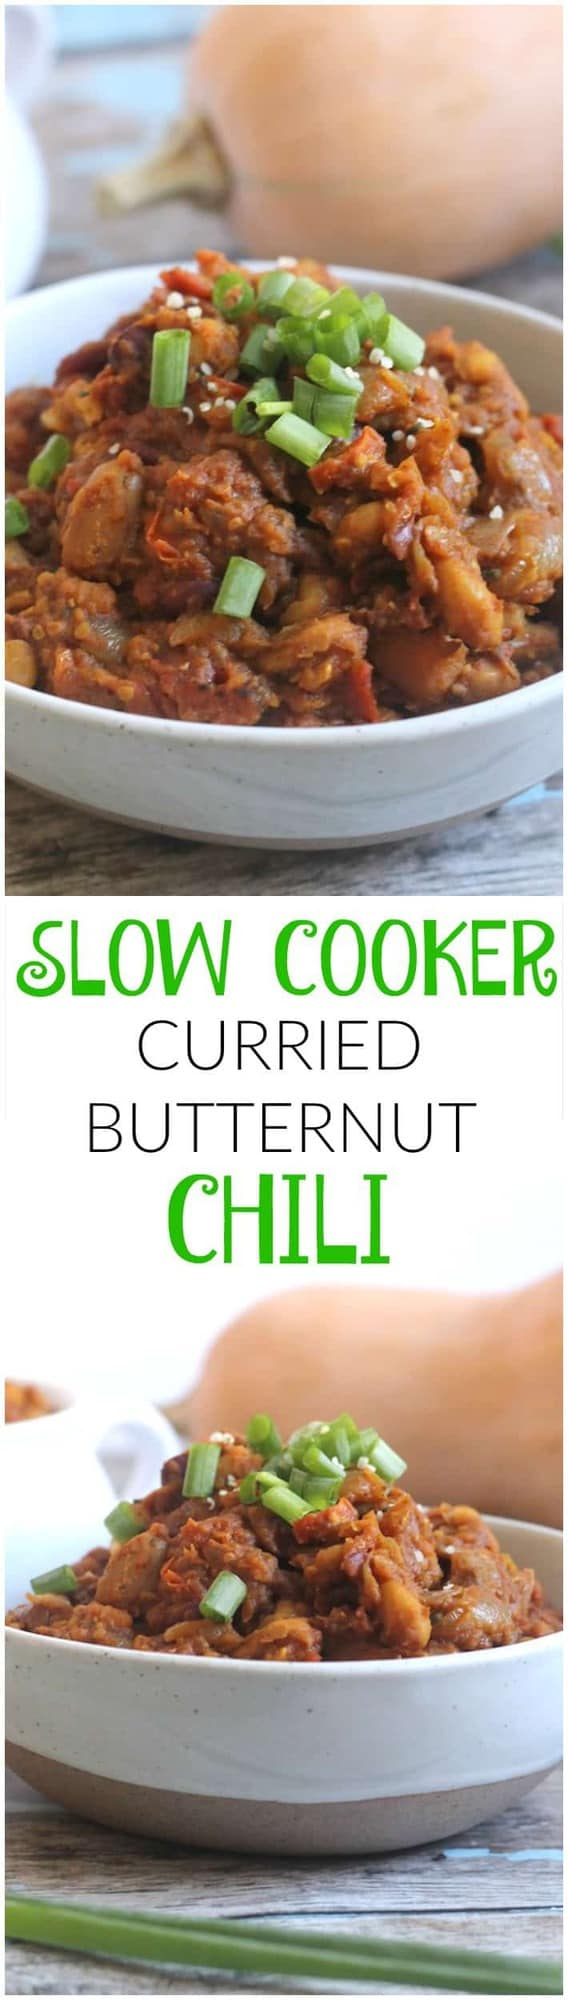 Slow Cooker Curried Butternut Chili is an easy, hearty, vegan weeknight meal!